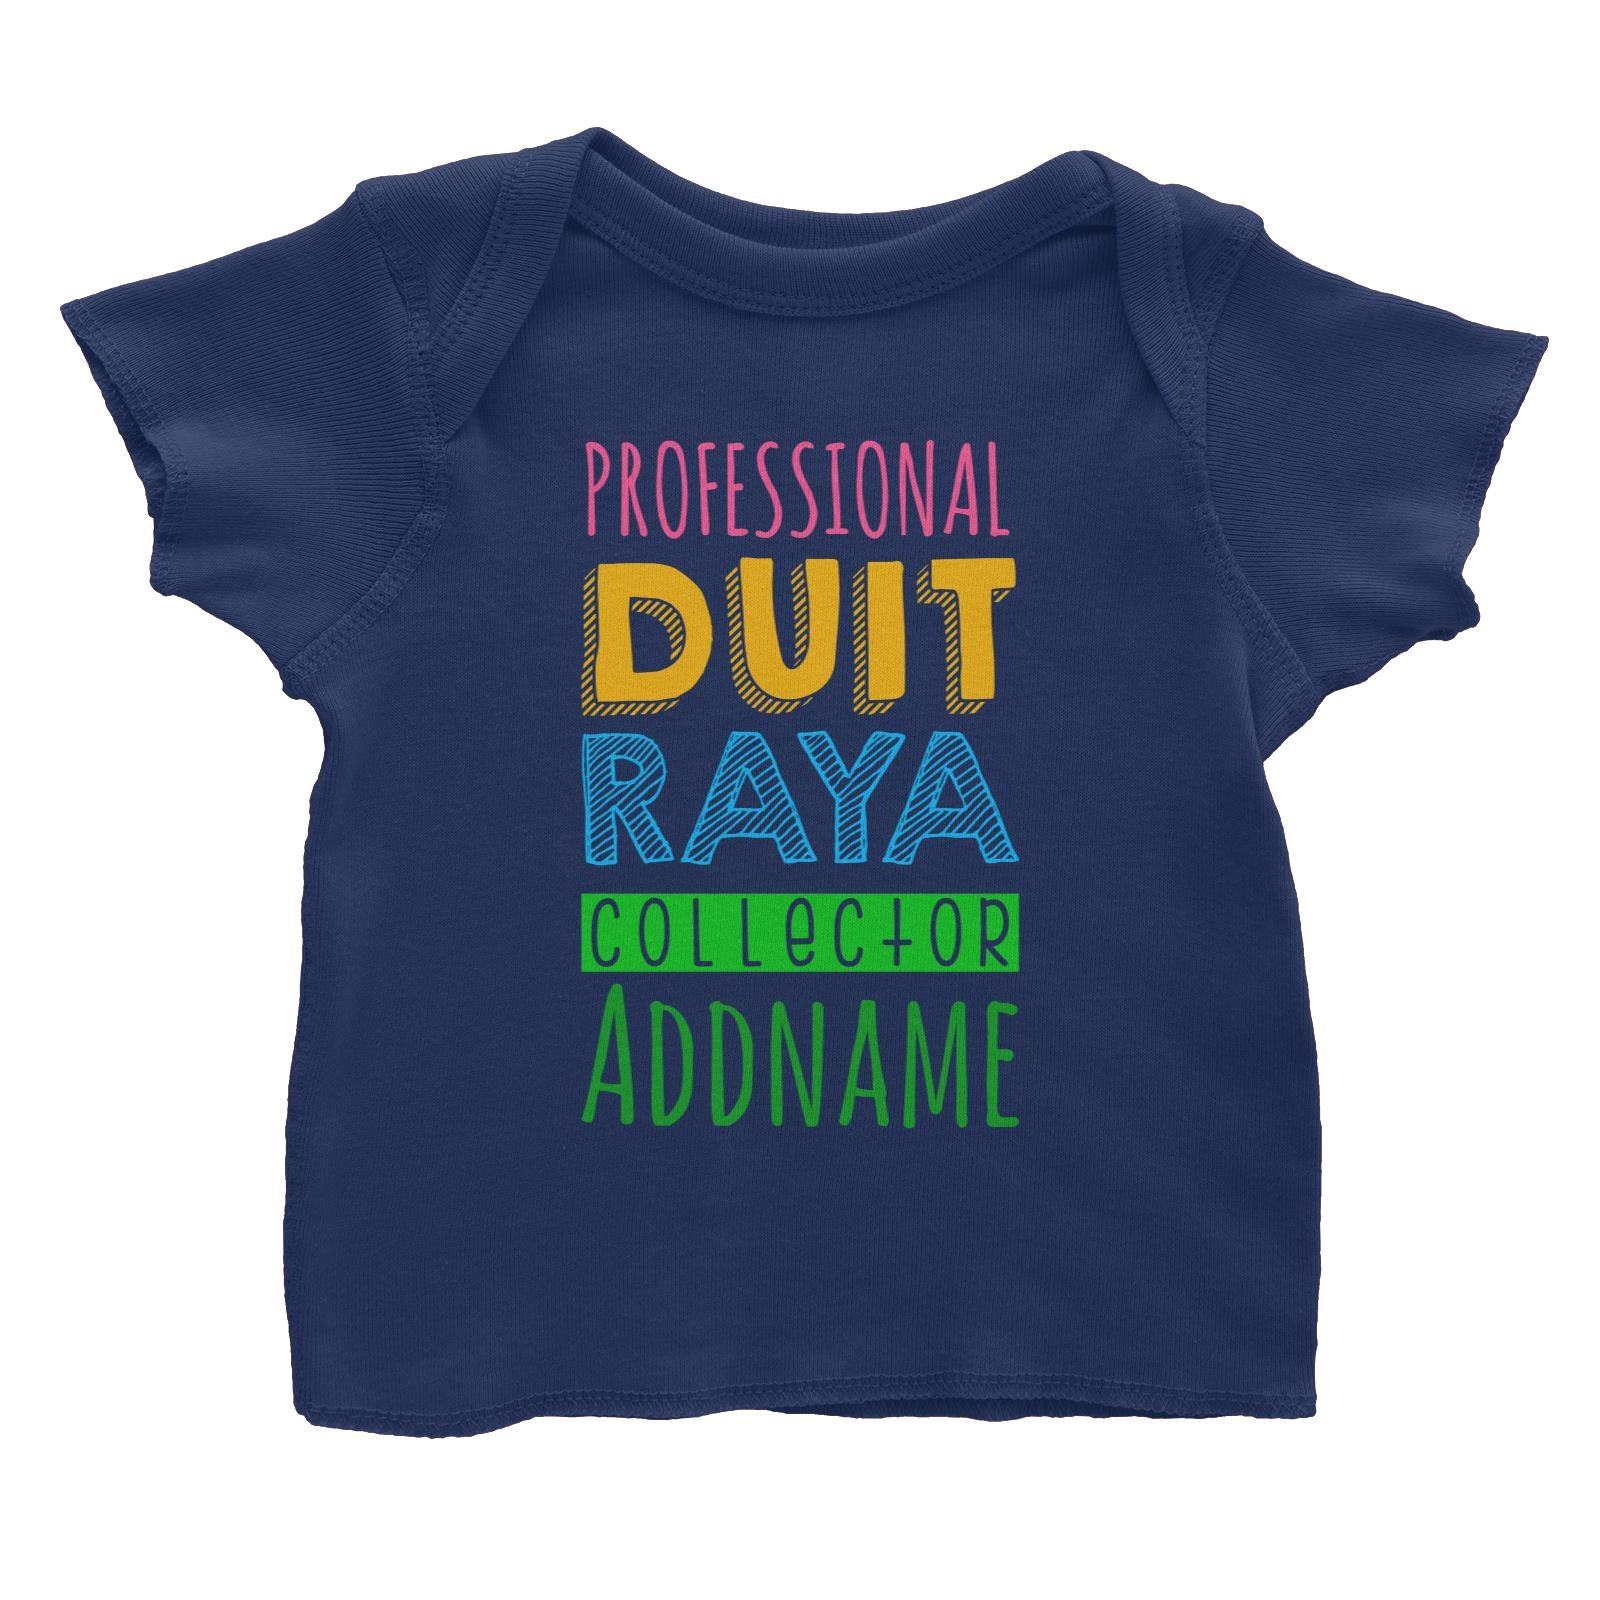 Professional Duit Raya Collector Baby T-Shirt  Personalizable Designs